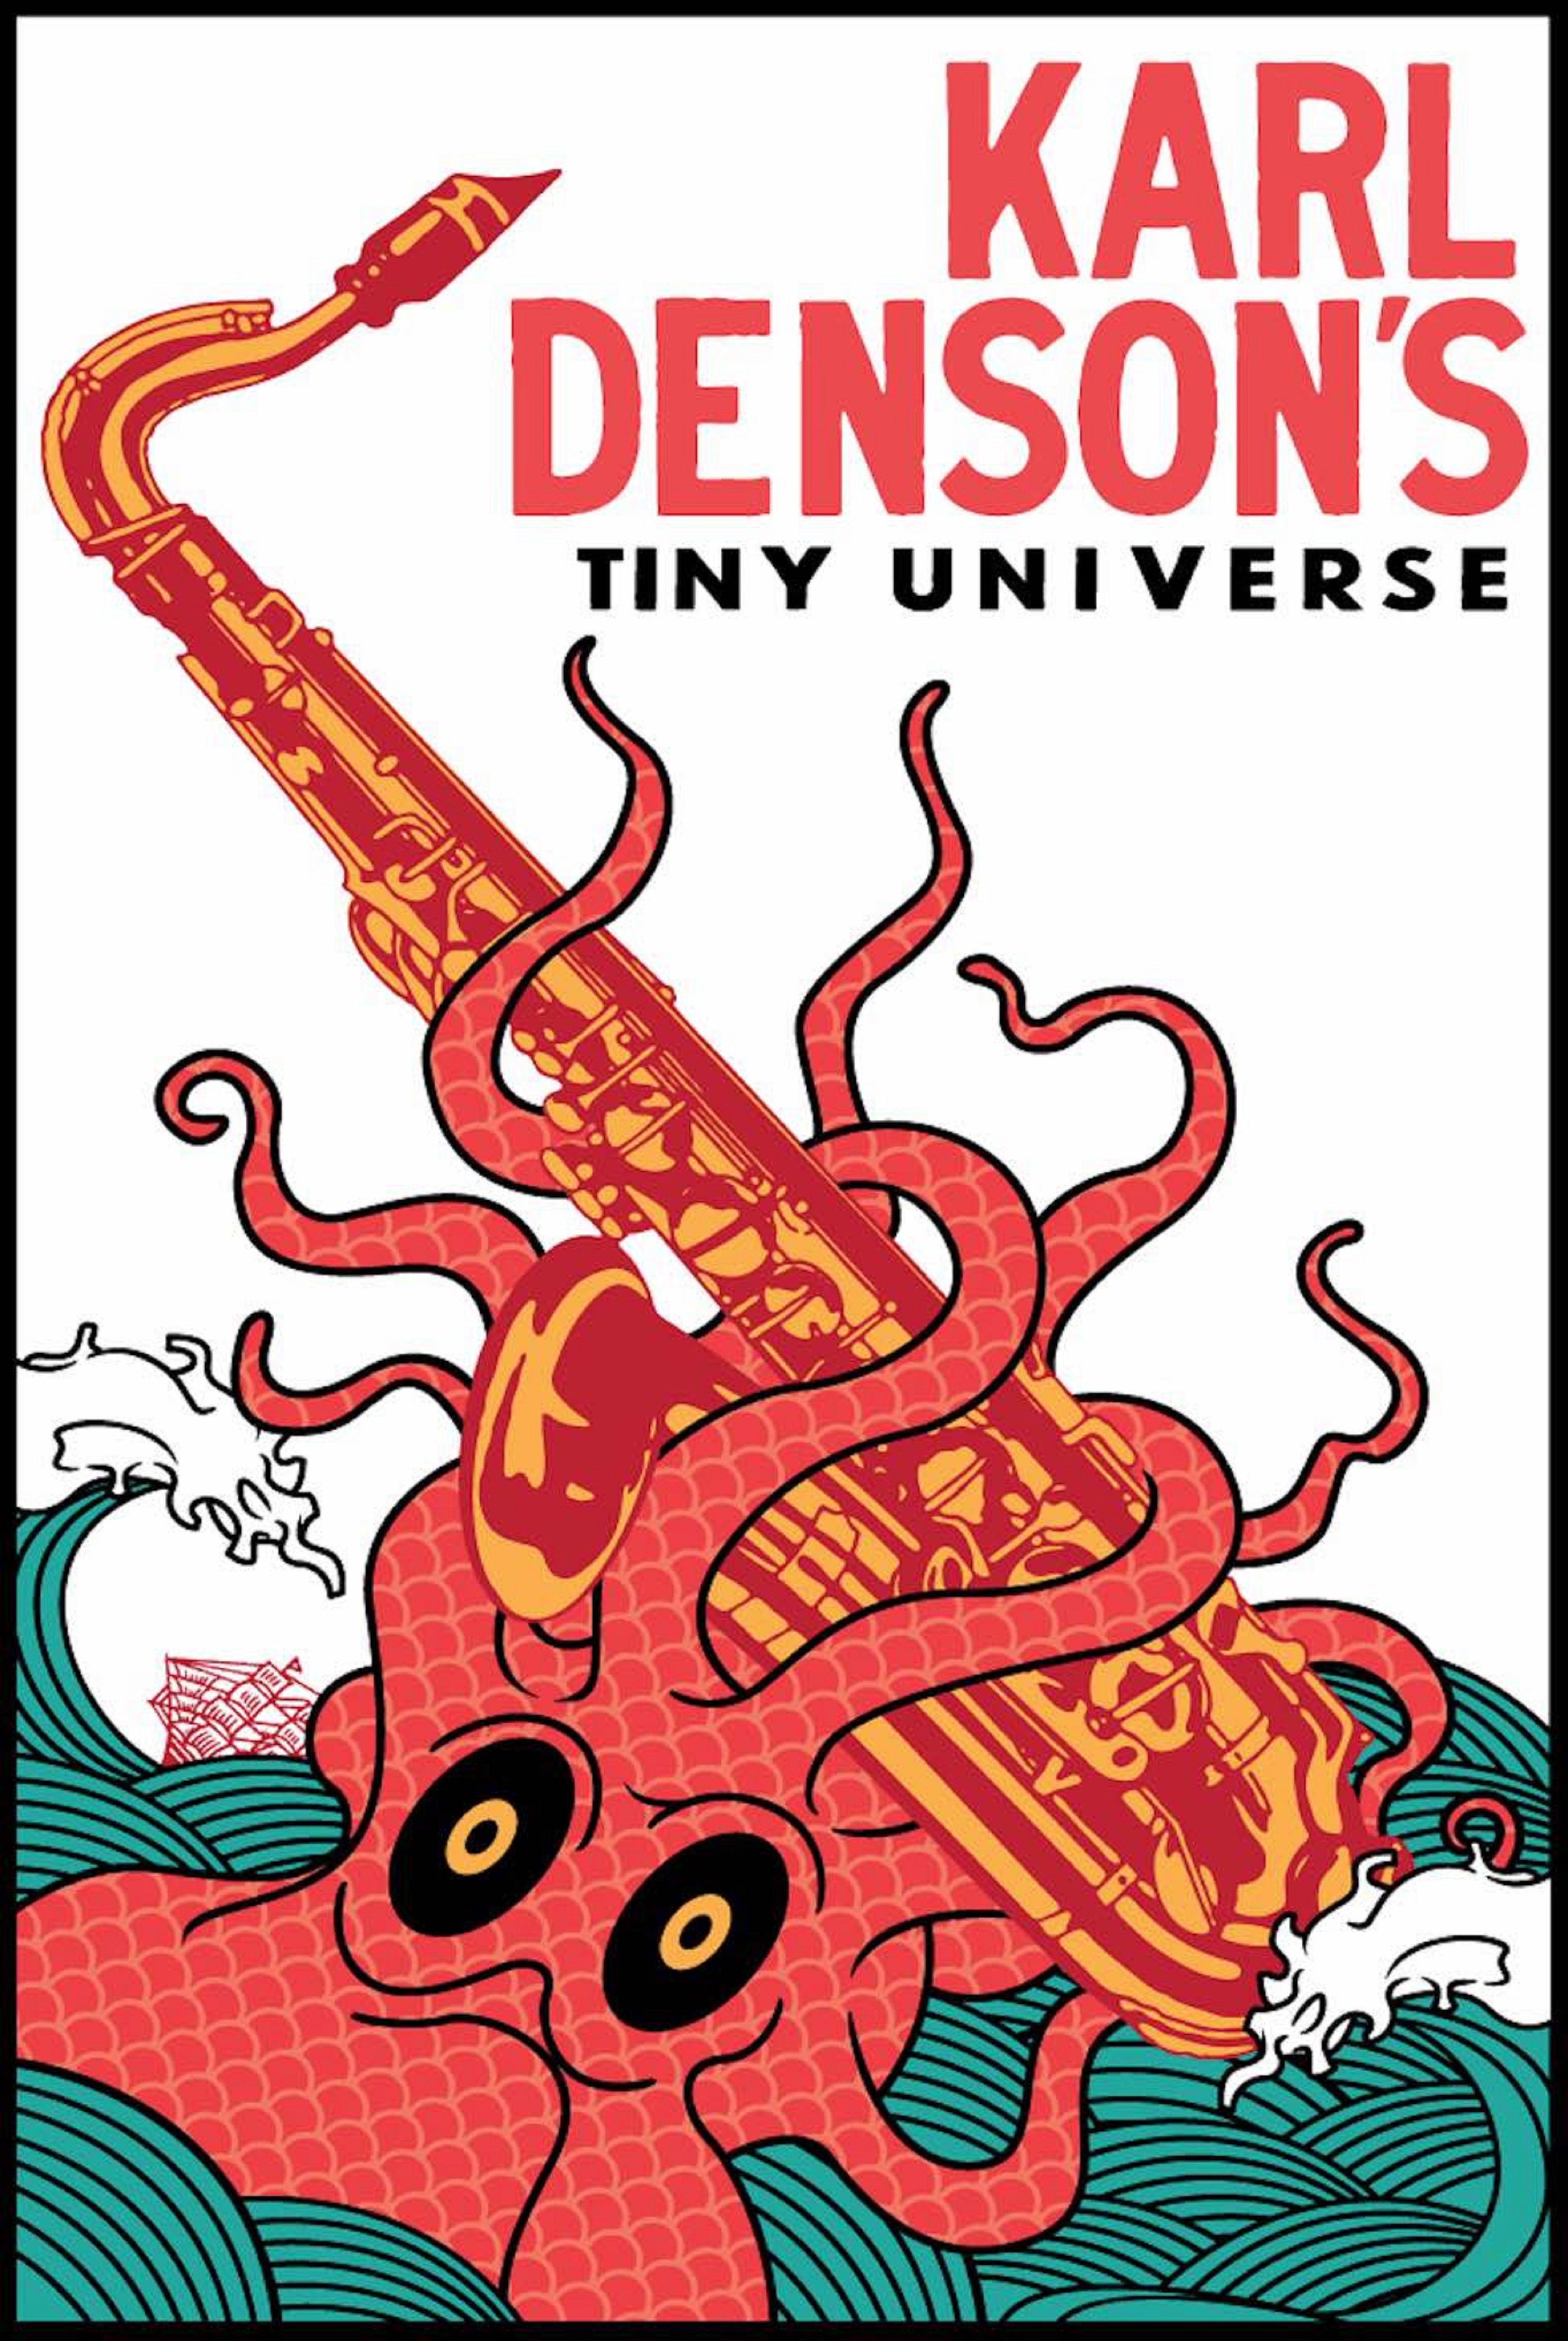 Karl Denson's Tiny Universe Announces Winter Tour Dates